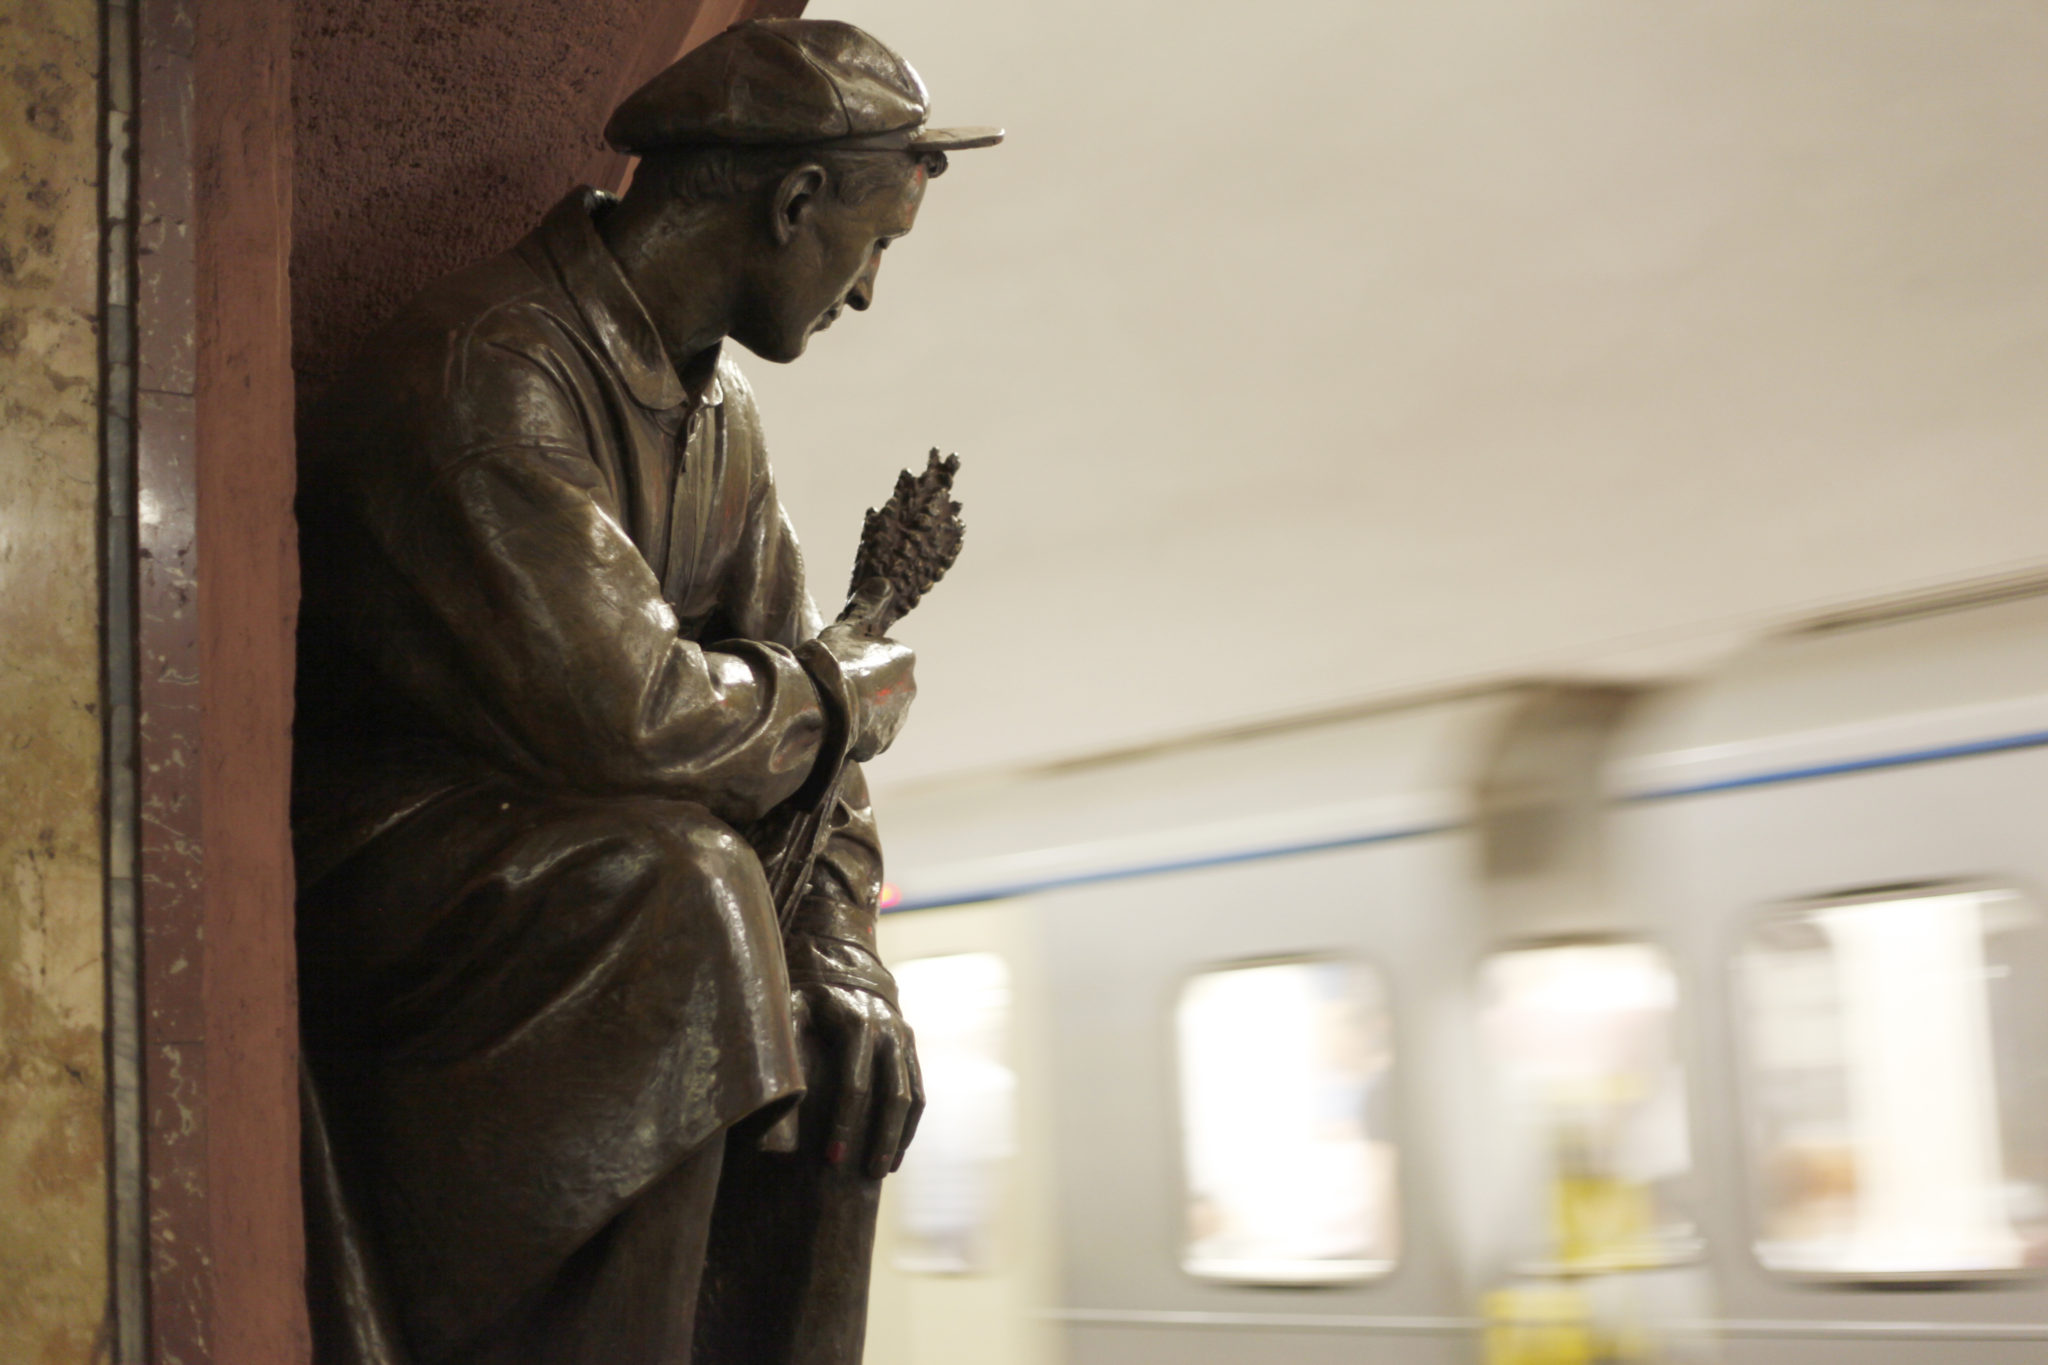 Moscow. About the signalman&#39